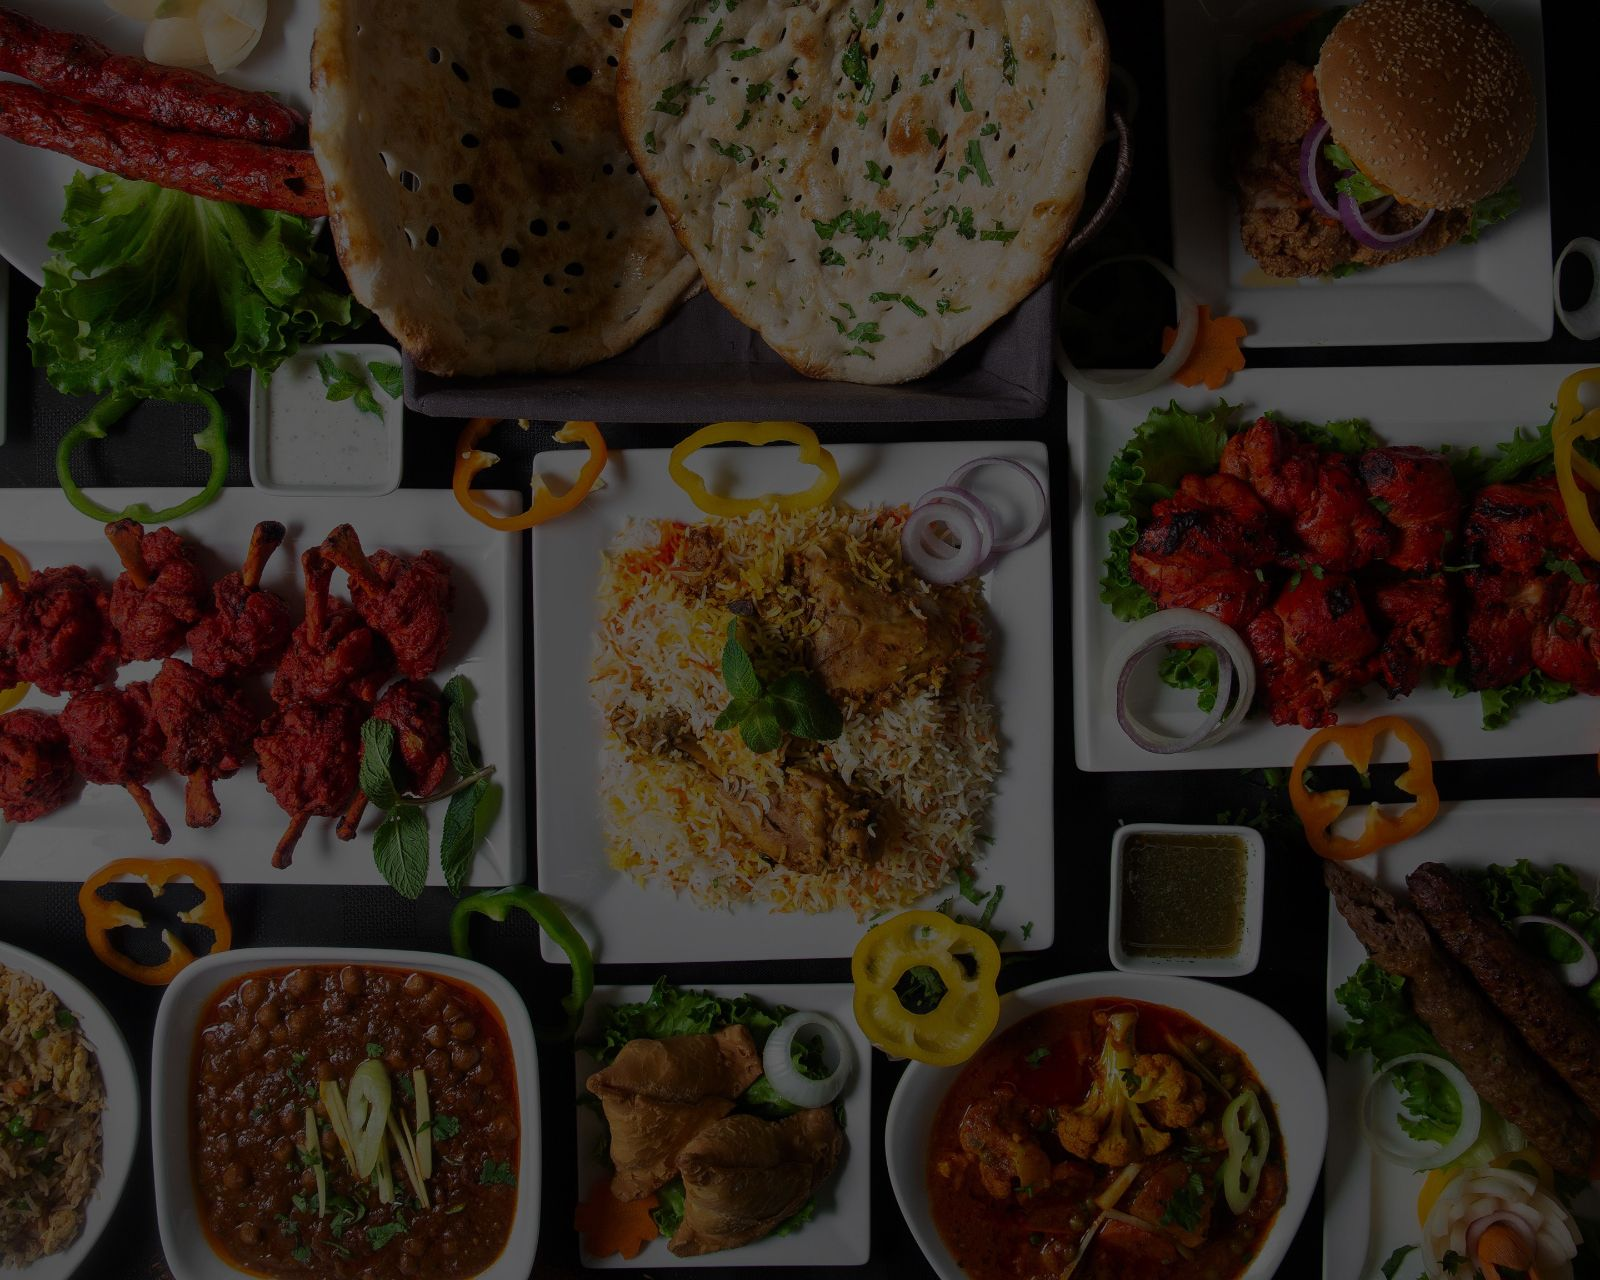 A variety in menu served with many Indian dishes.